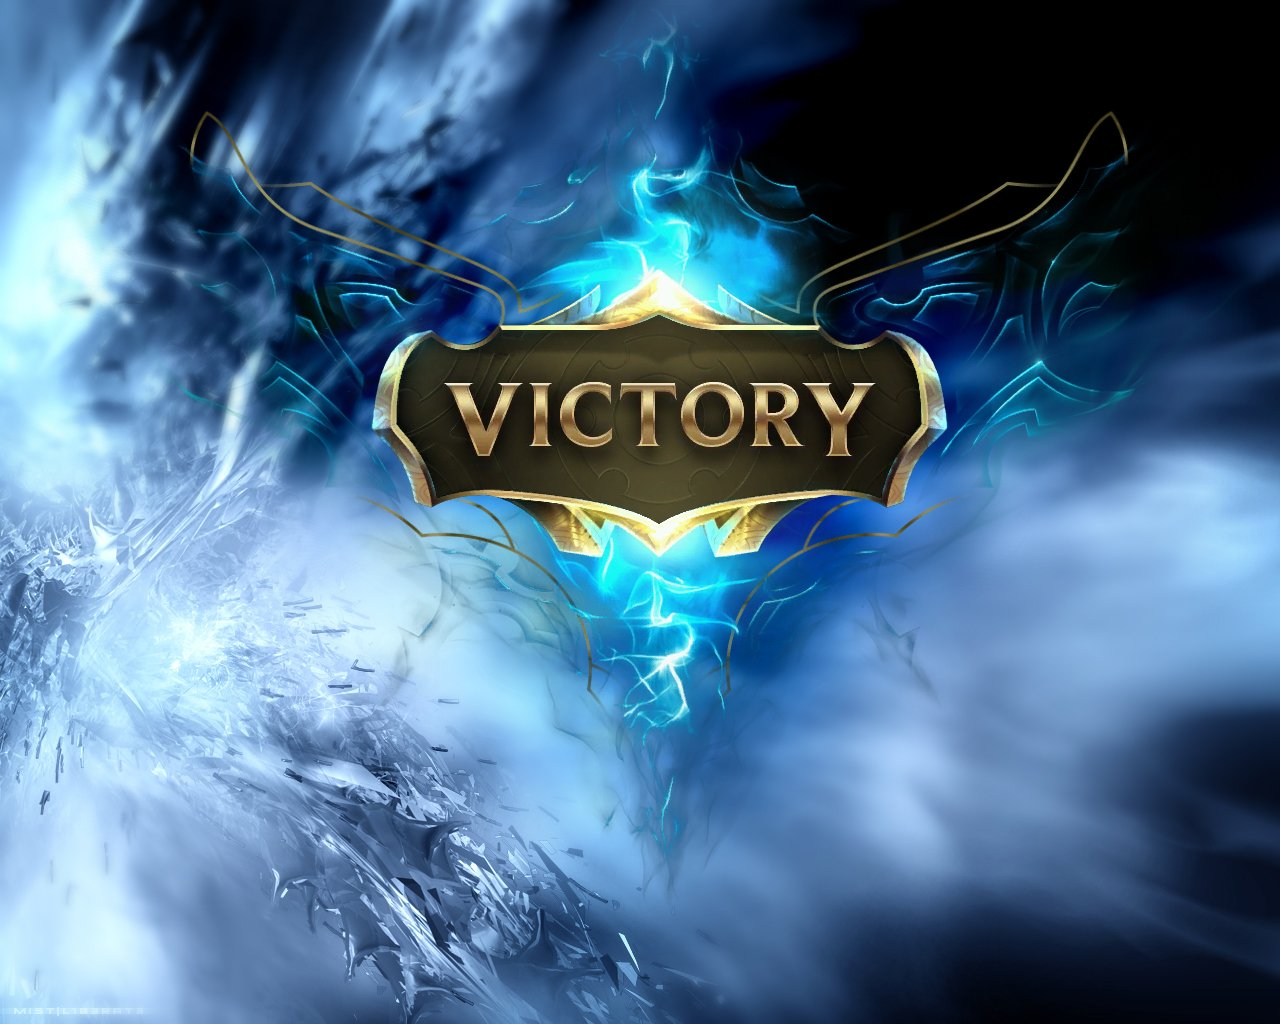 5 Victory HD Wallpapers Background Images 1280x1024